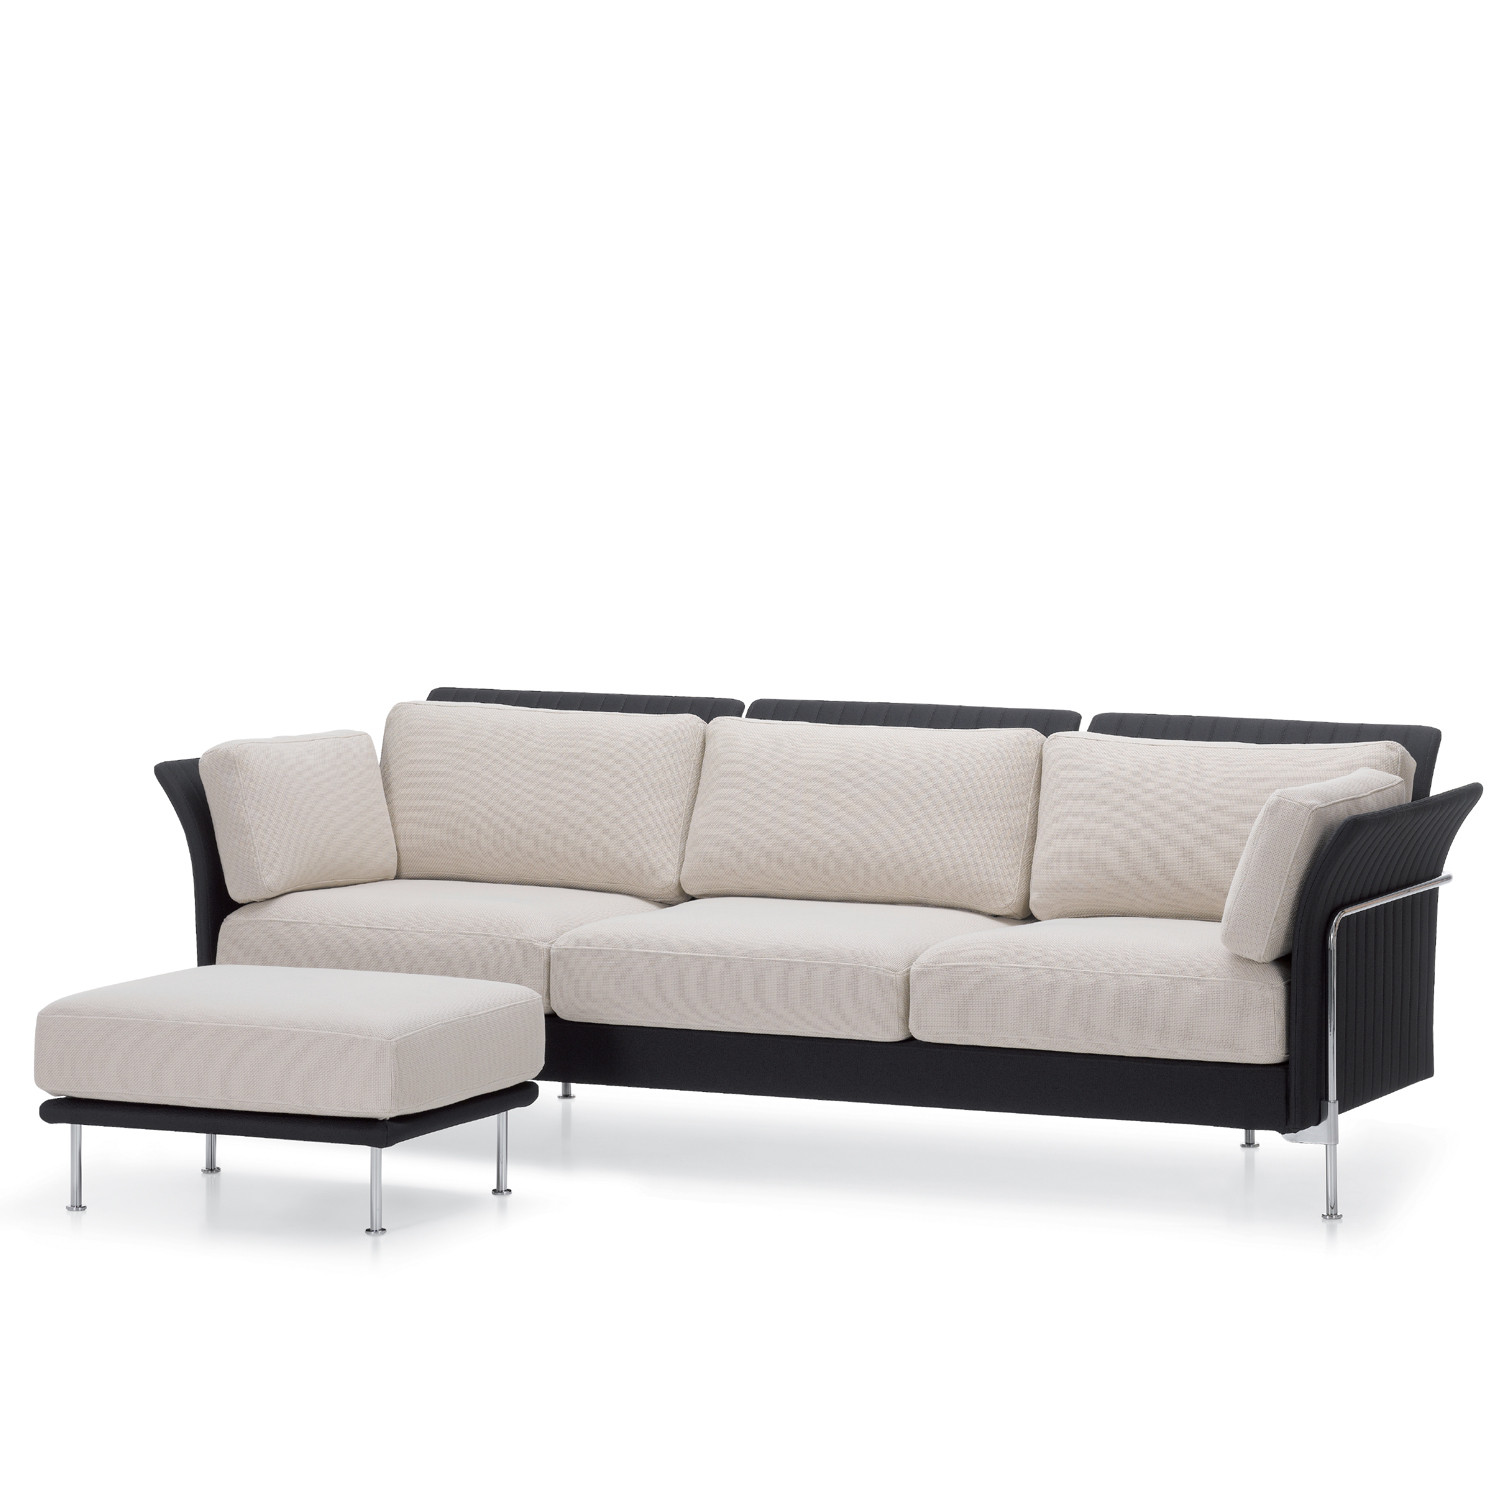 Soft Shell Sofa Two-Seater